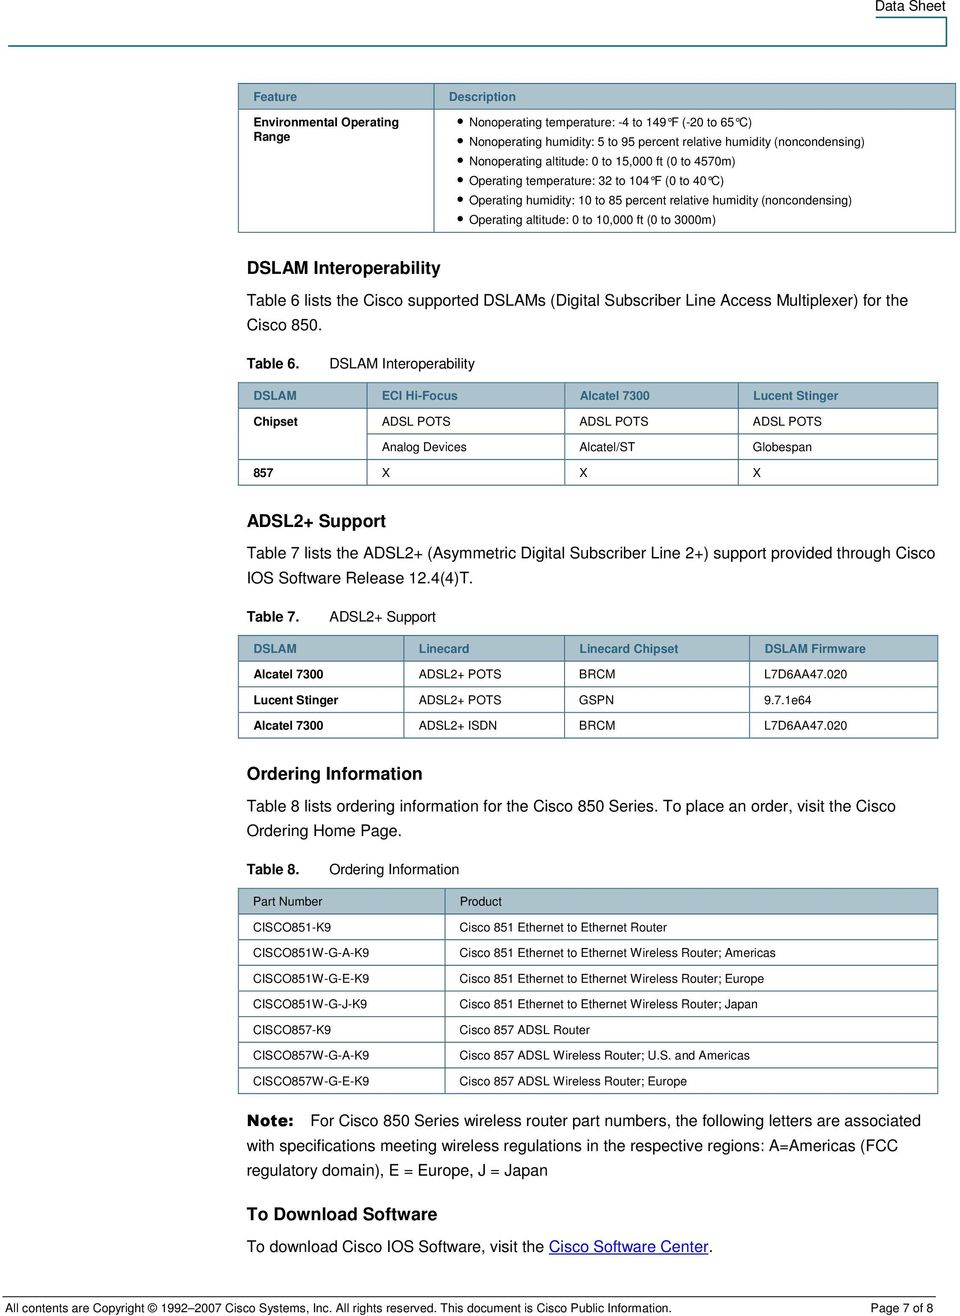 Table 6 lists the Cisco supported DSLAMs (Digital Subscriber Line Access Multiplexer) for the Cisco 850. Table 6.